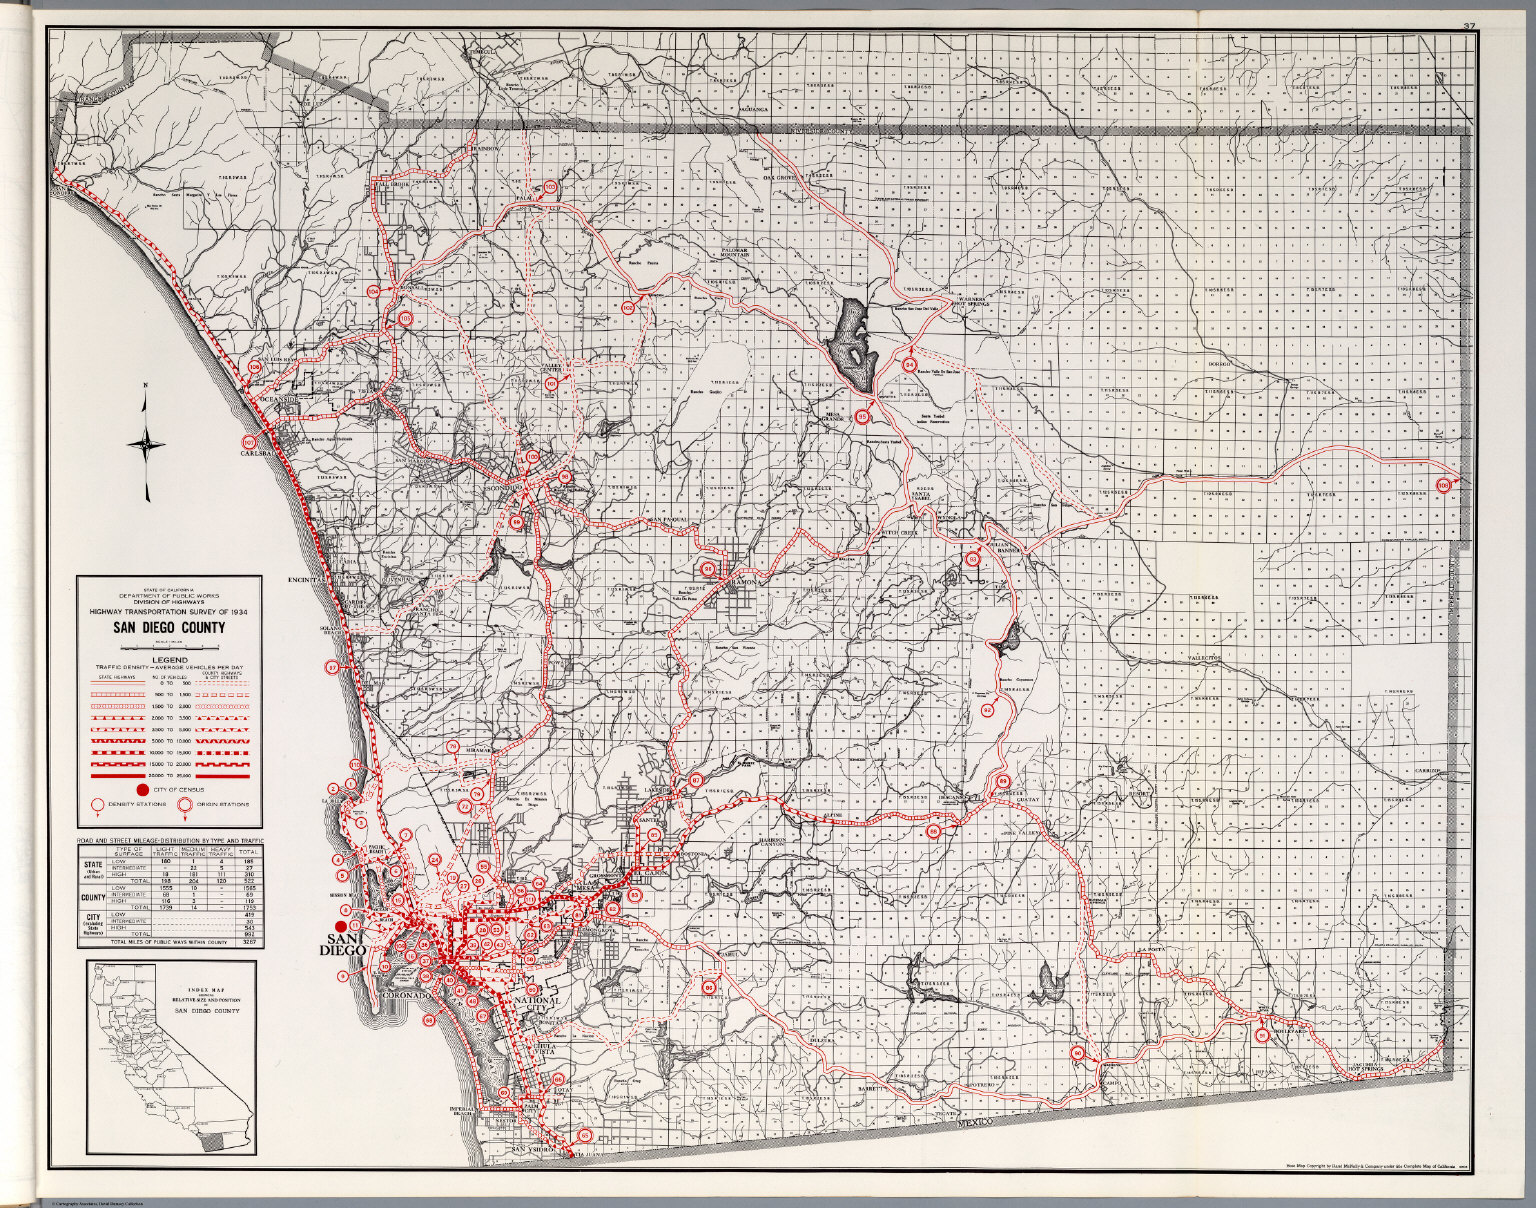 San Diego County David Rumsey Historical Map Collection